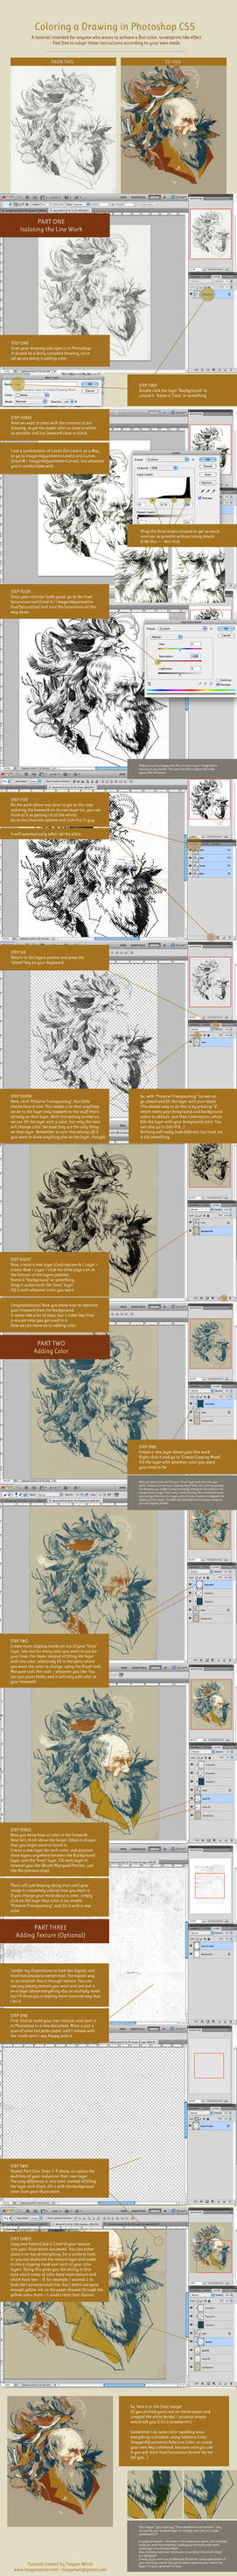 Coloring a Drawing in Photoshop CS5 by teaganwhite